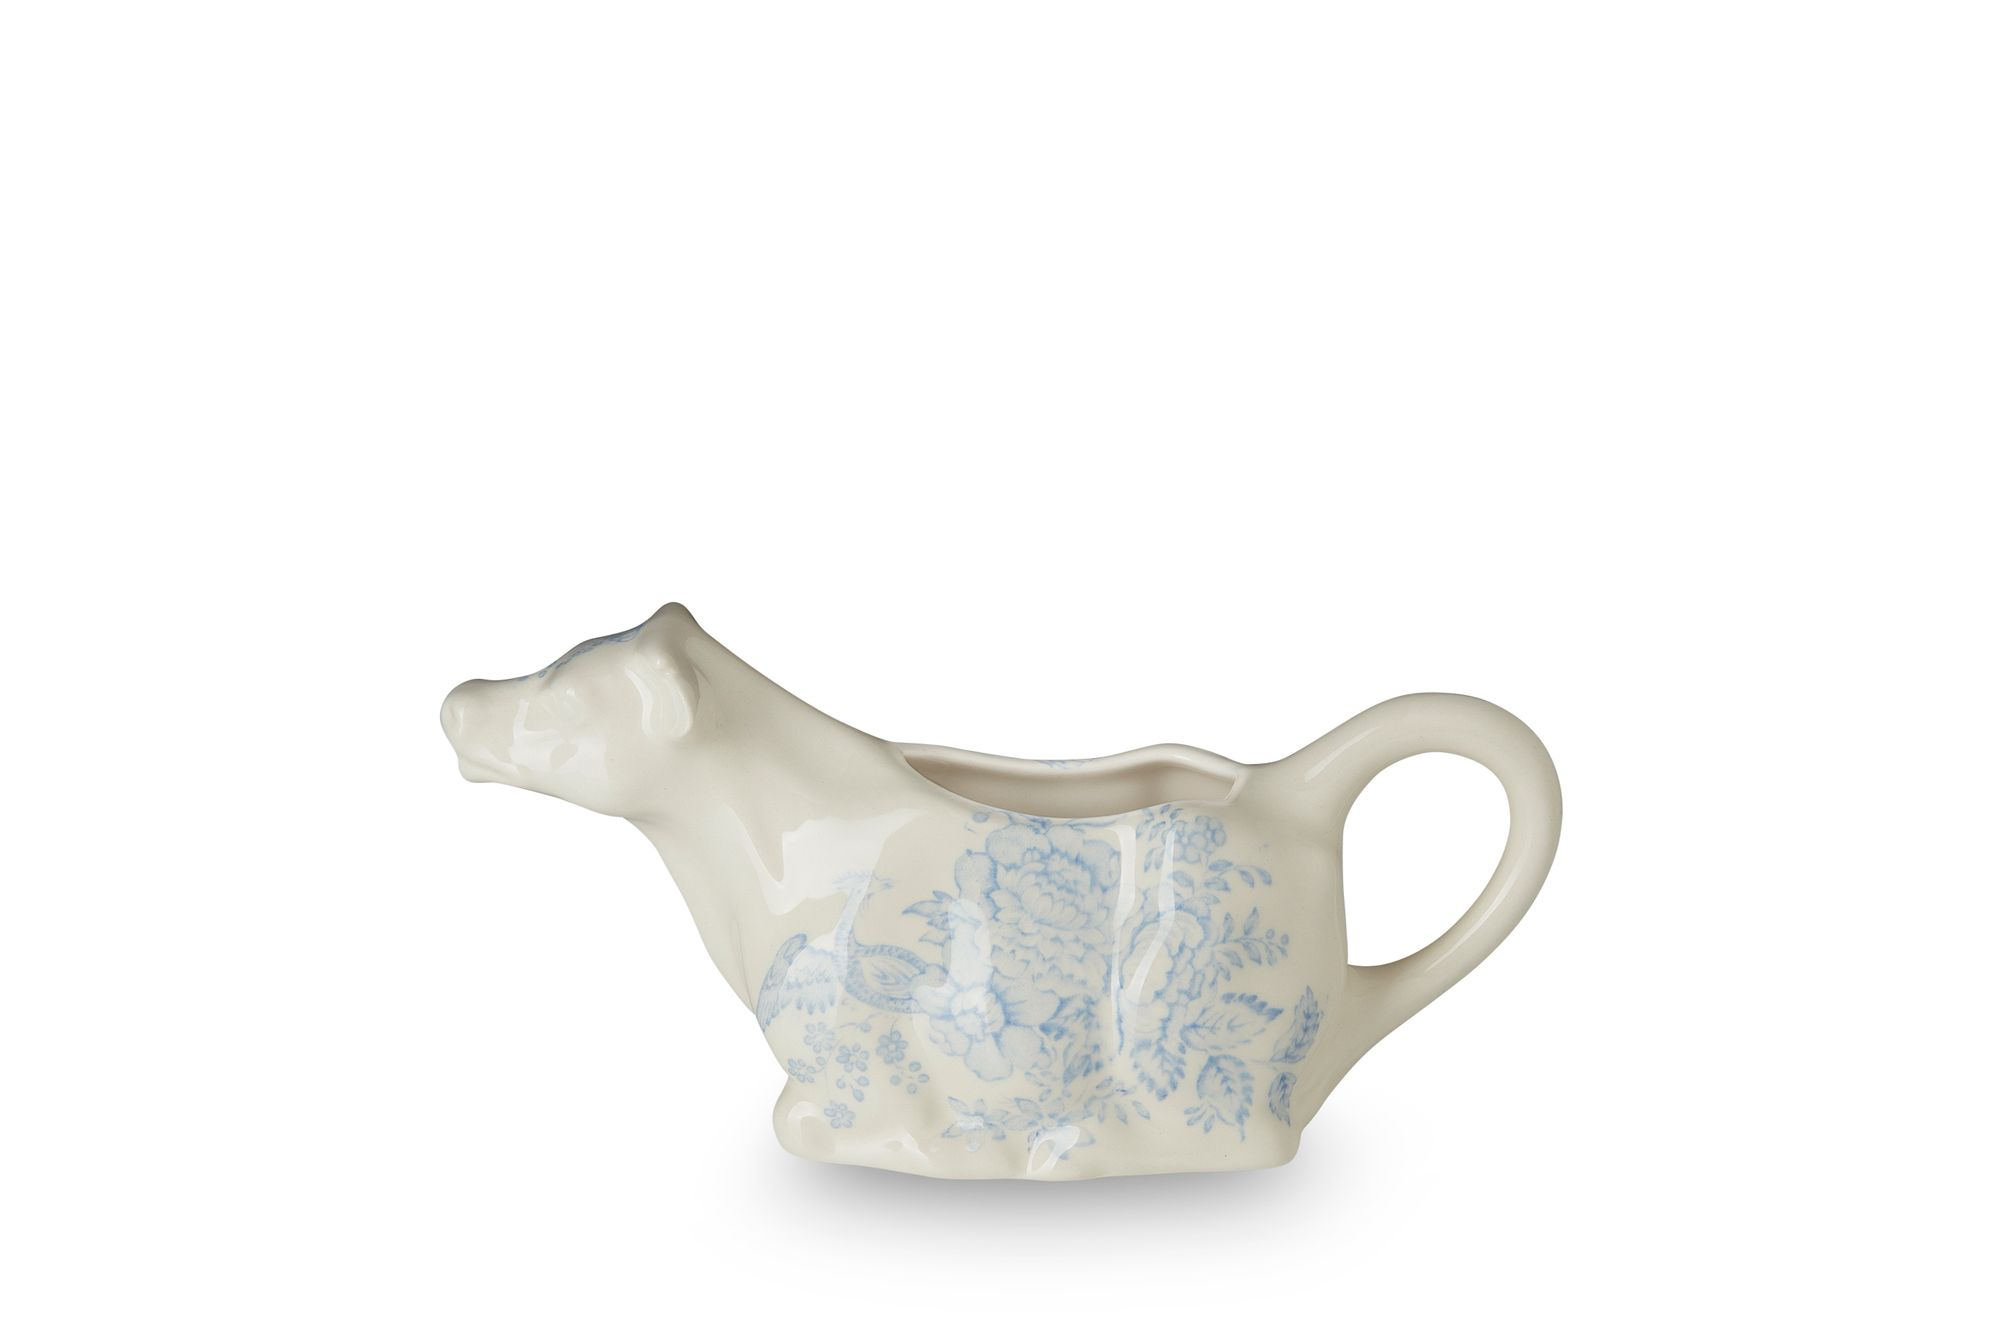 Burleigh Blue Asiatic Pheasants Milk Jug Cow Creamer thumb 2